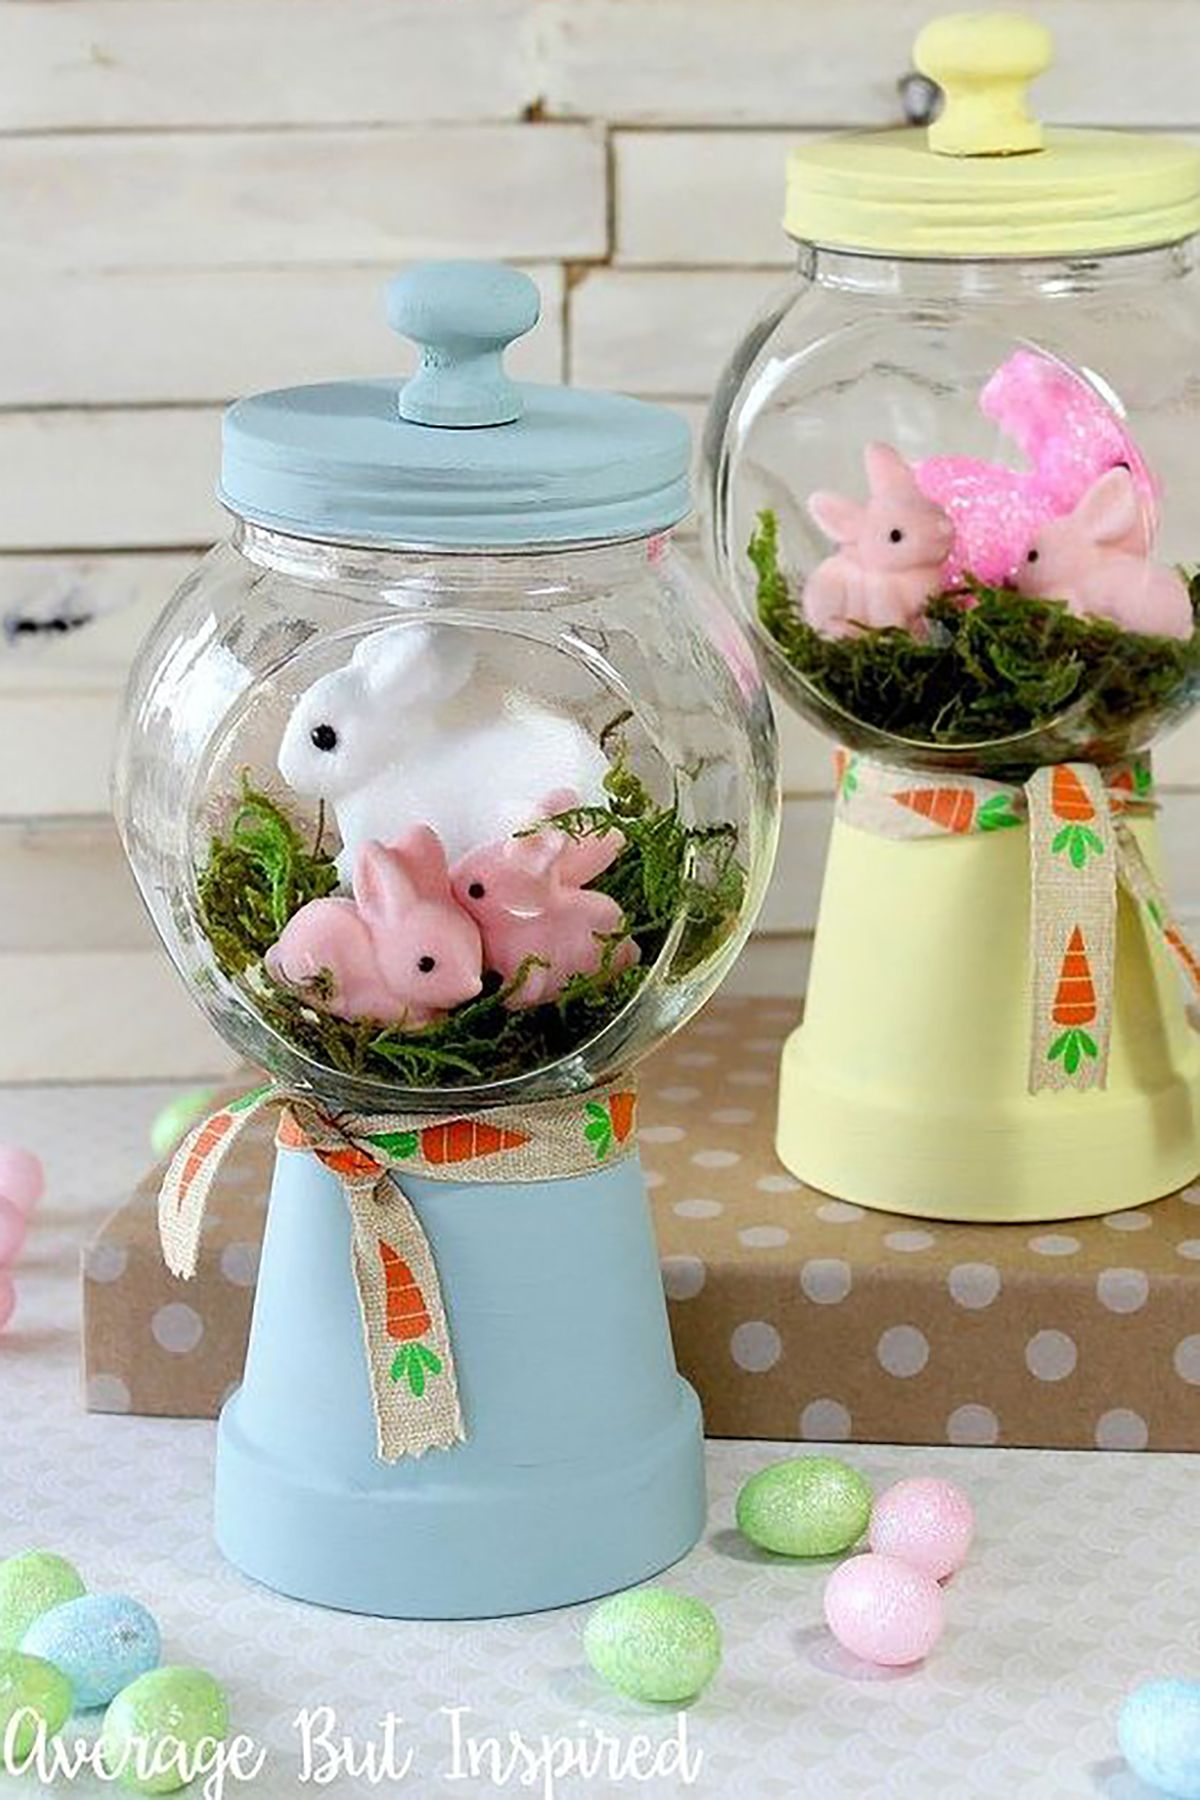 46 Easy Easter Crafts   Ideas for Easter DIY Decorations   Gifts     46 Easy Easter Crafts   Ideas for Easter DIY Decorations   Gifts   Country  Living